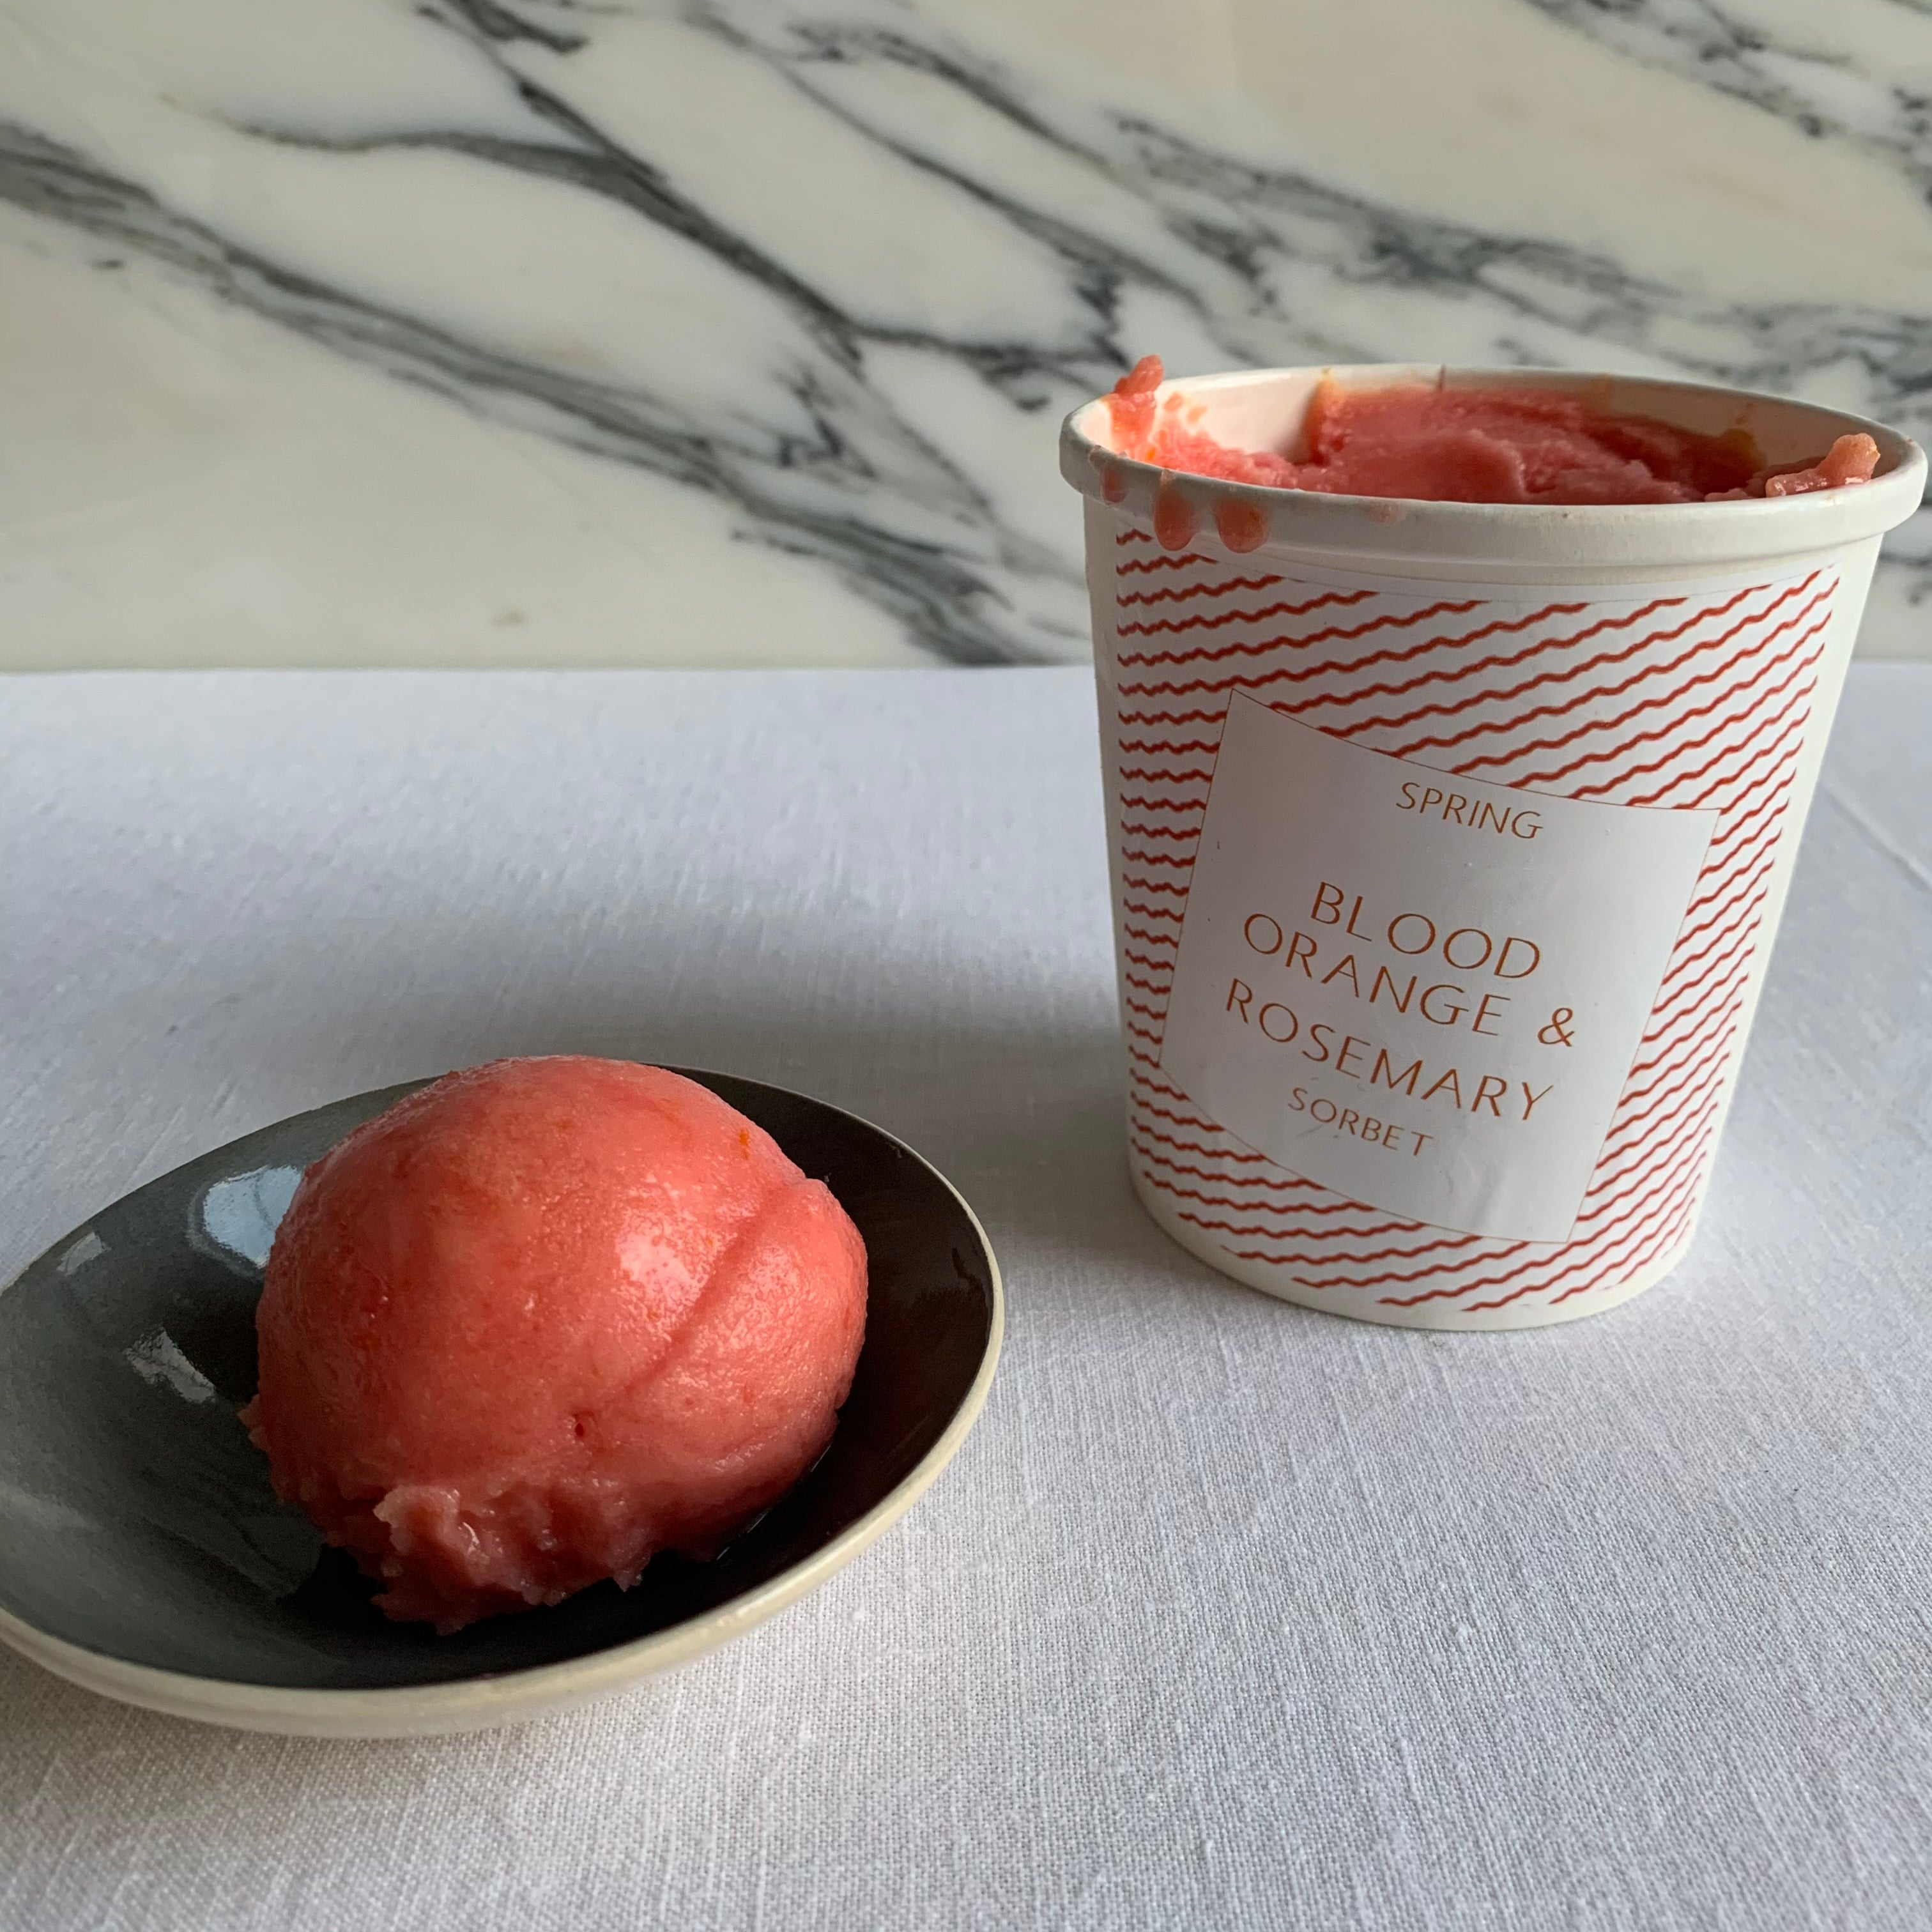 Blood Orange and Rosemary Sorbet